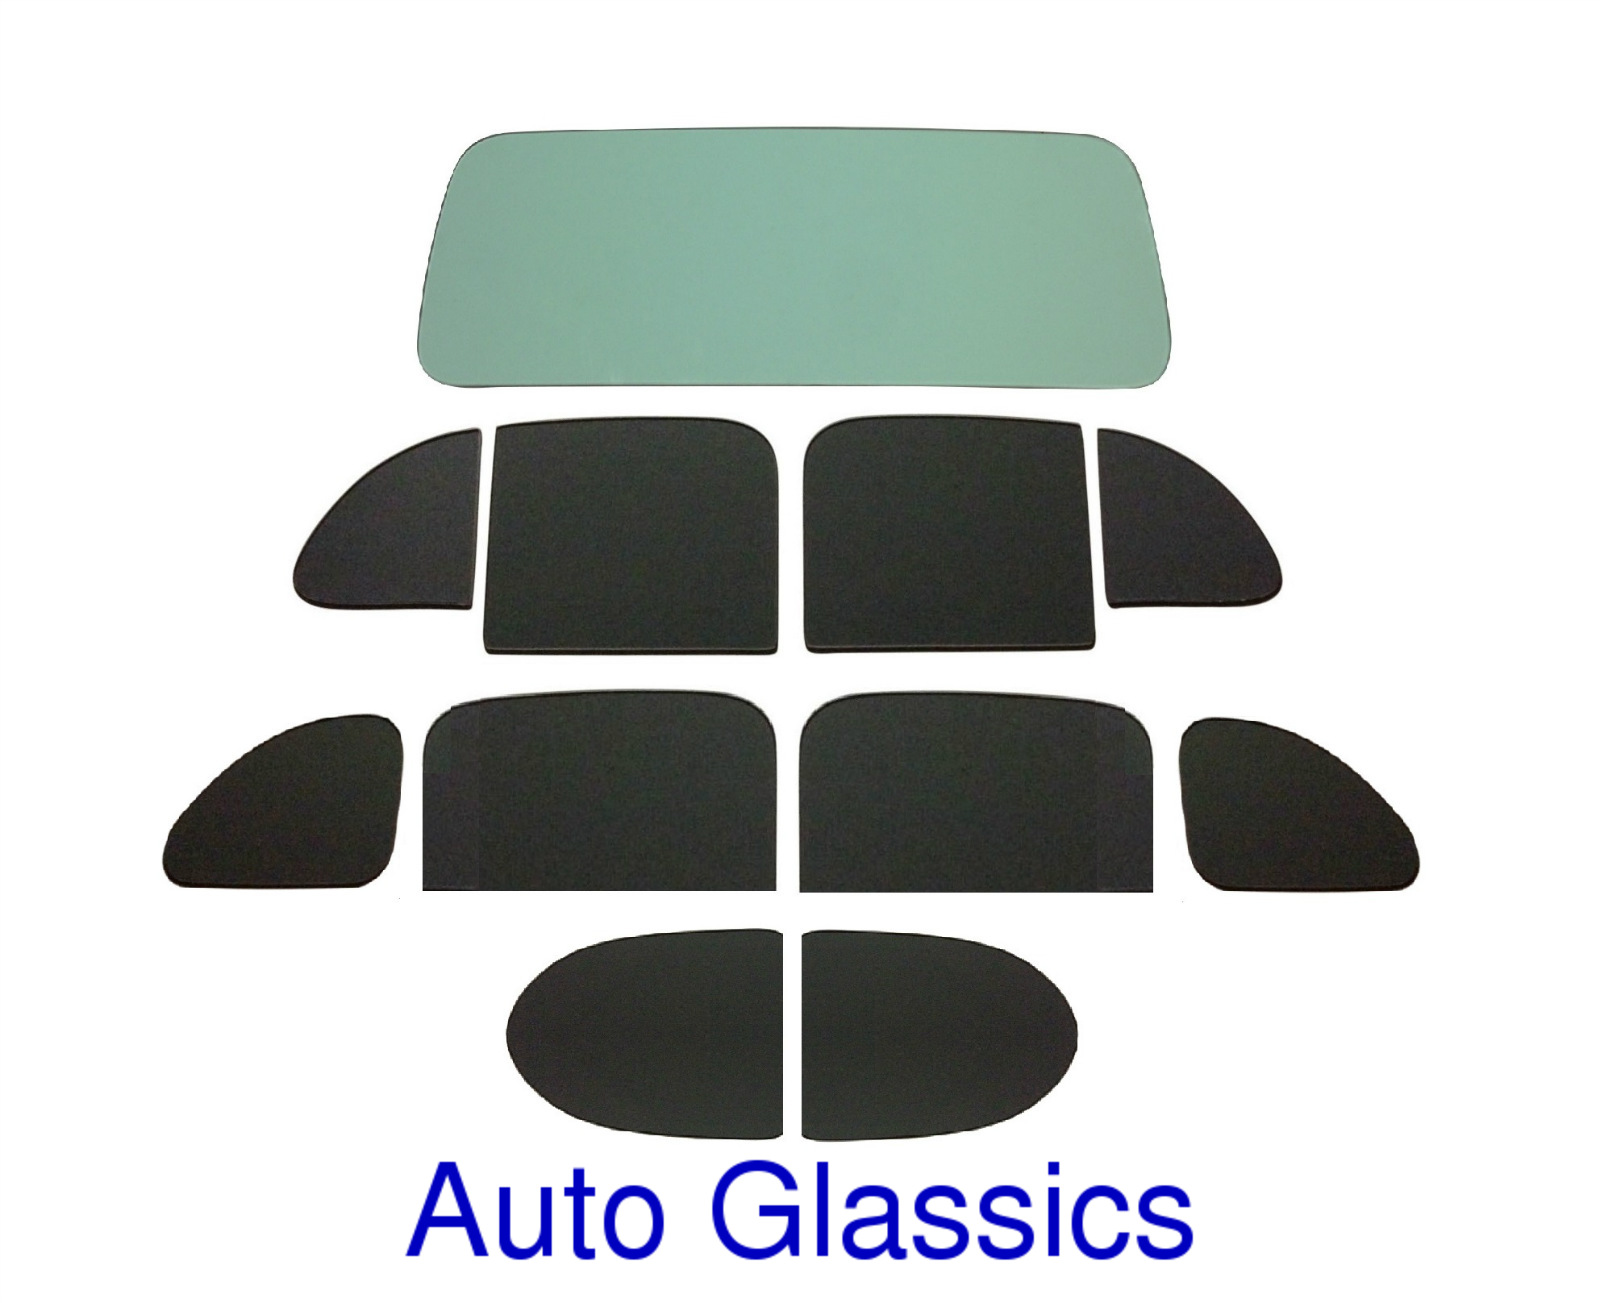 1938 Dodge D8 4 Door Sedan Classic Auto Glass Kit